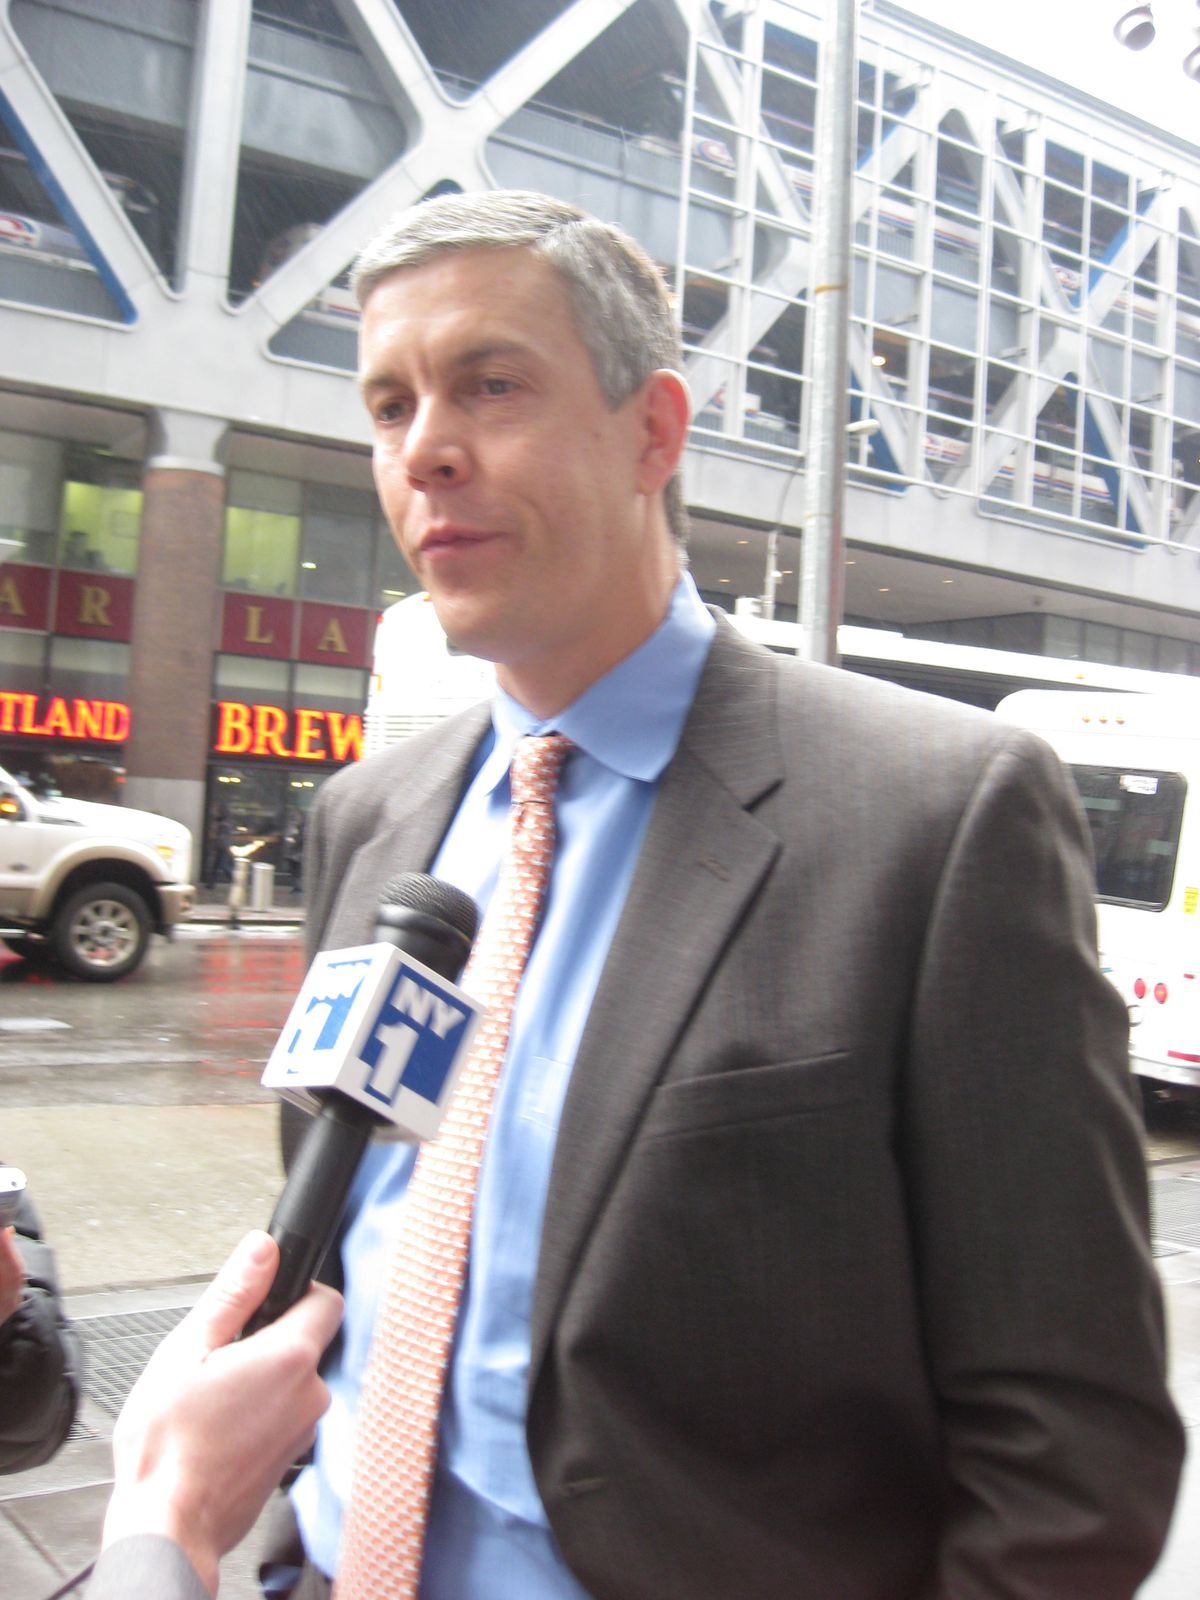 U.S. Secretary of Education Arne Duncan praised the agreement between the State Education Department and NYSUT.